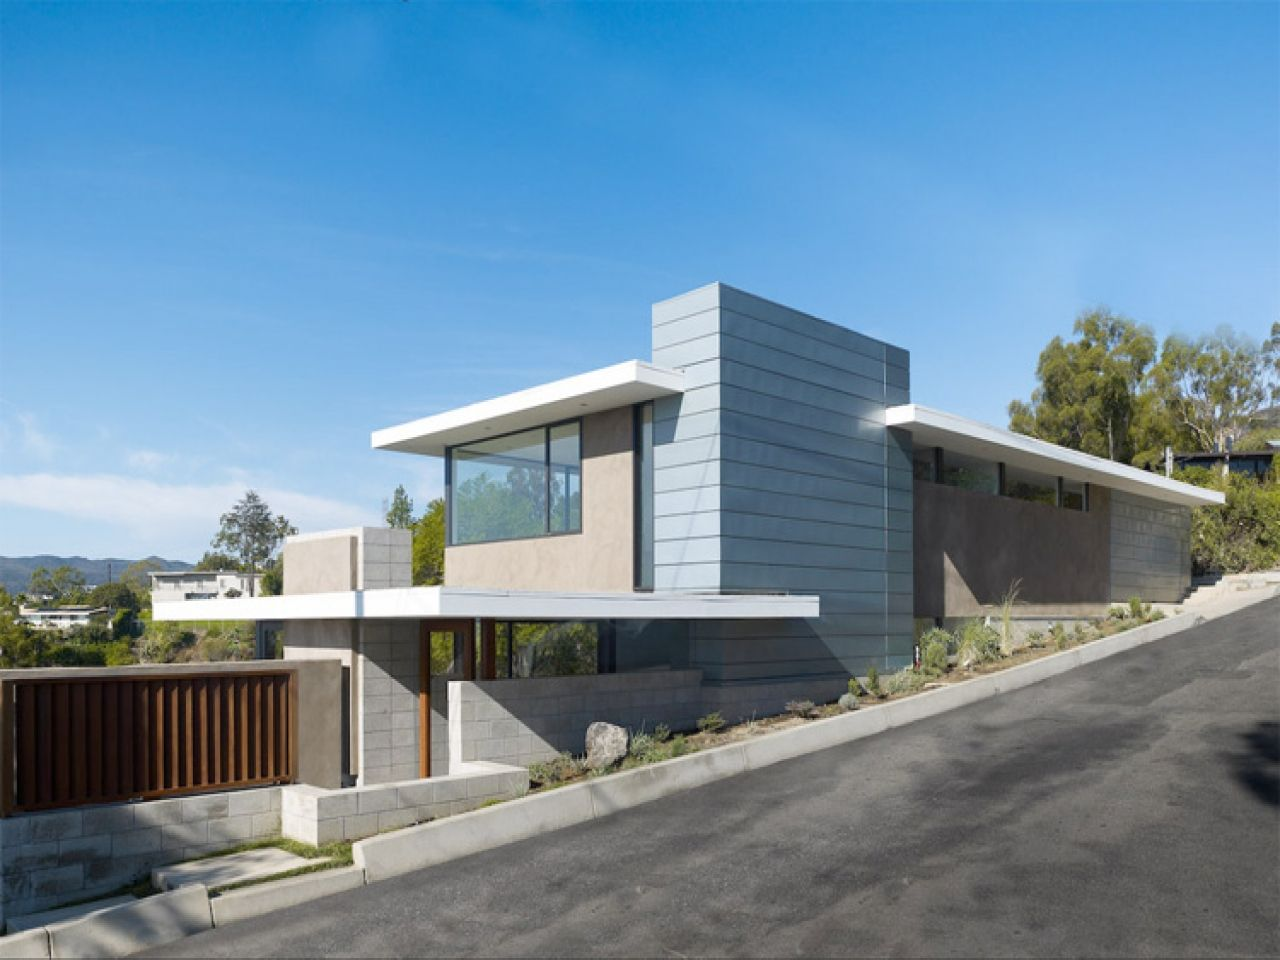 California Modern House Plans Wooden Mid Century Modern House Mid Century Modern Exterior House Architecture Design